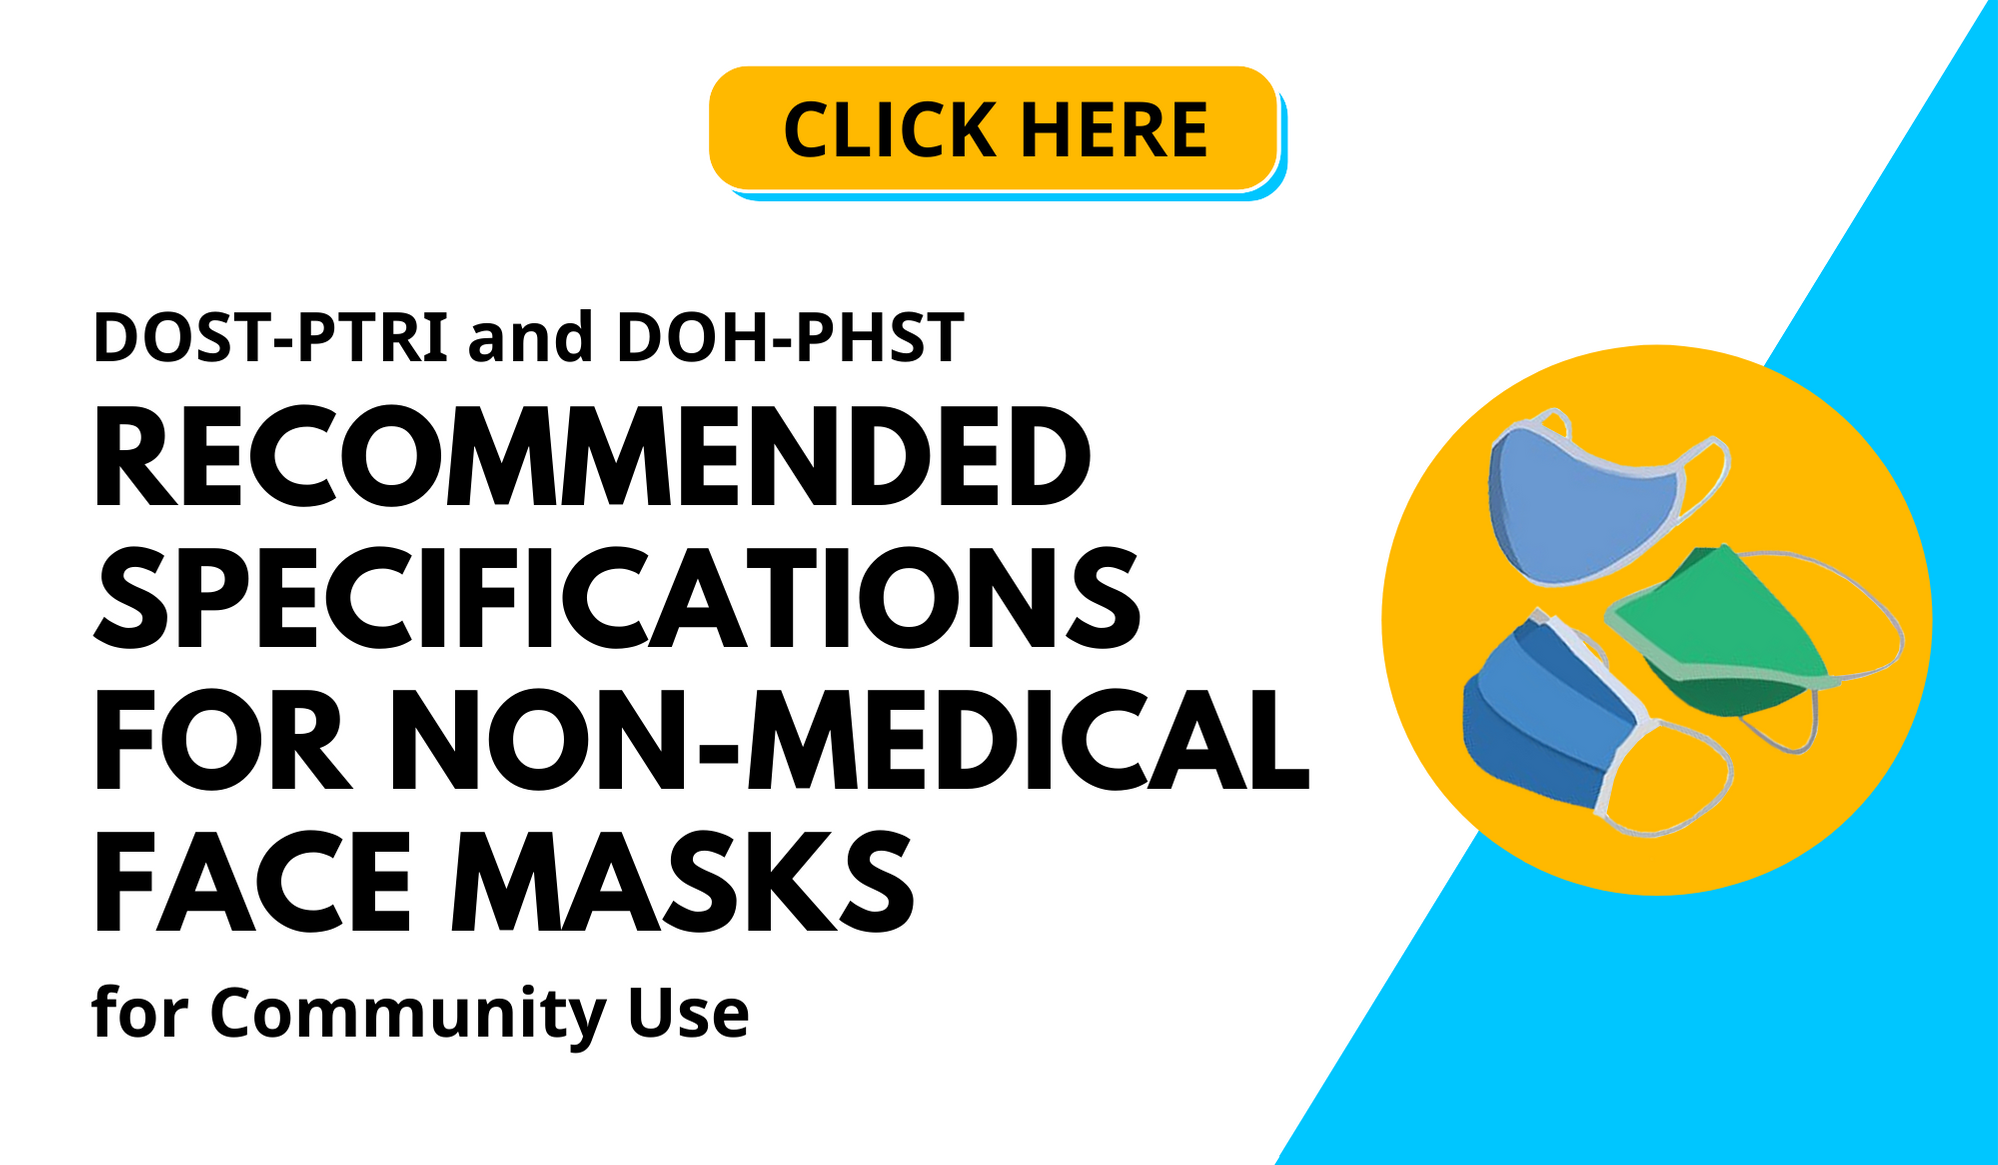 DOST PTRI and DOH Recommended Specifications for Non_Medical Face